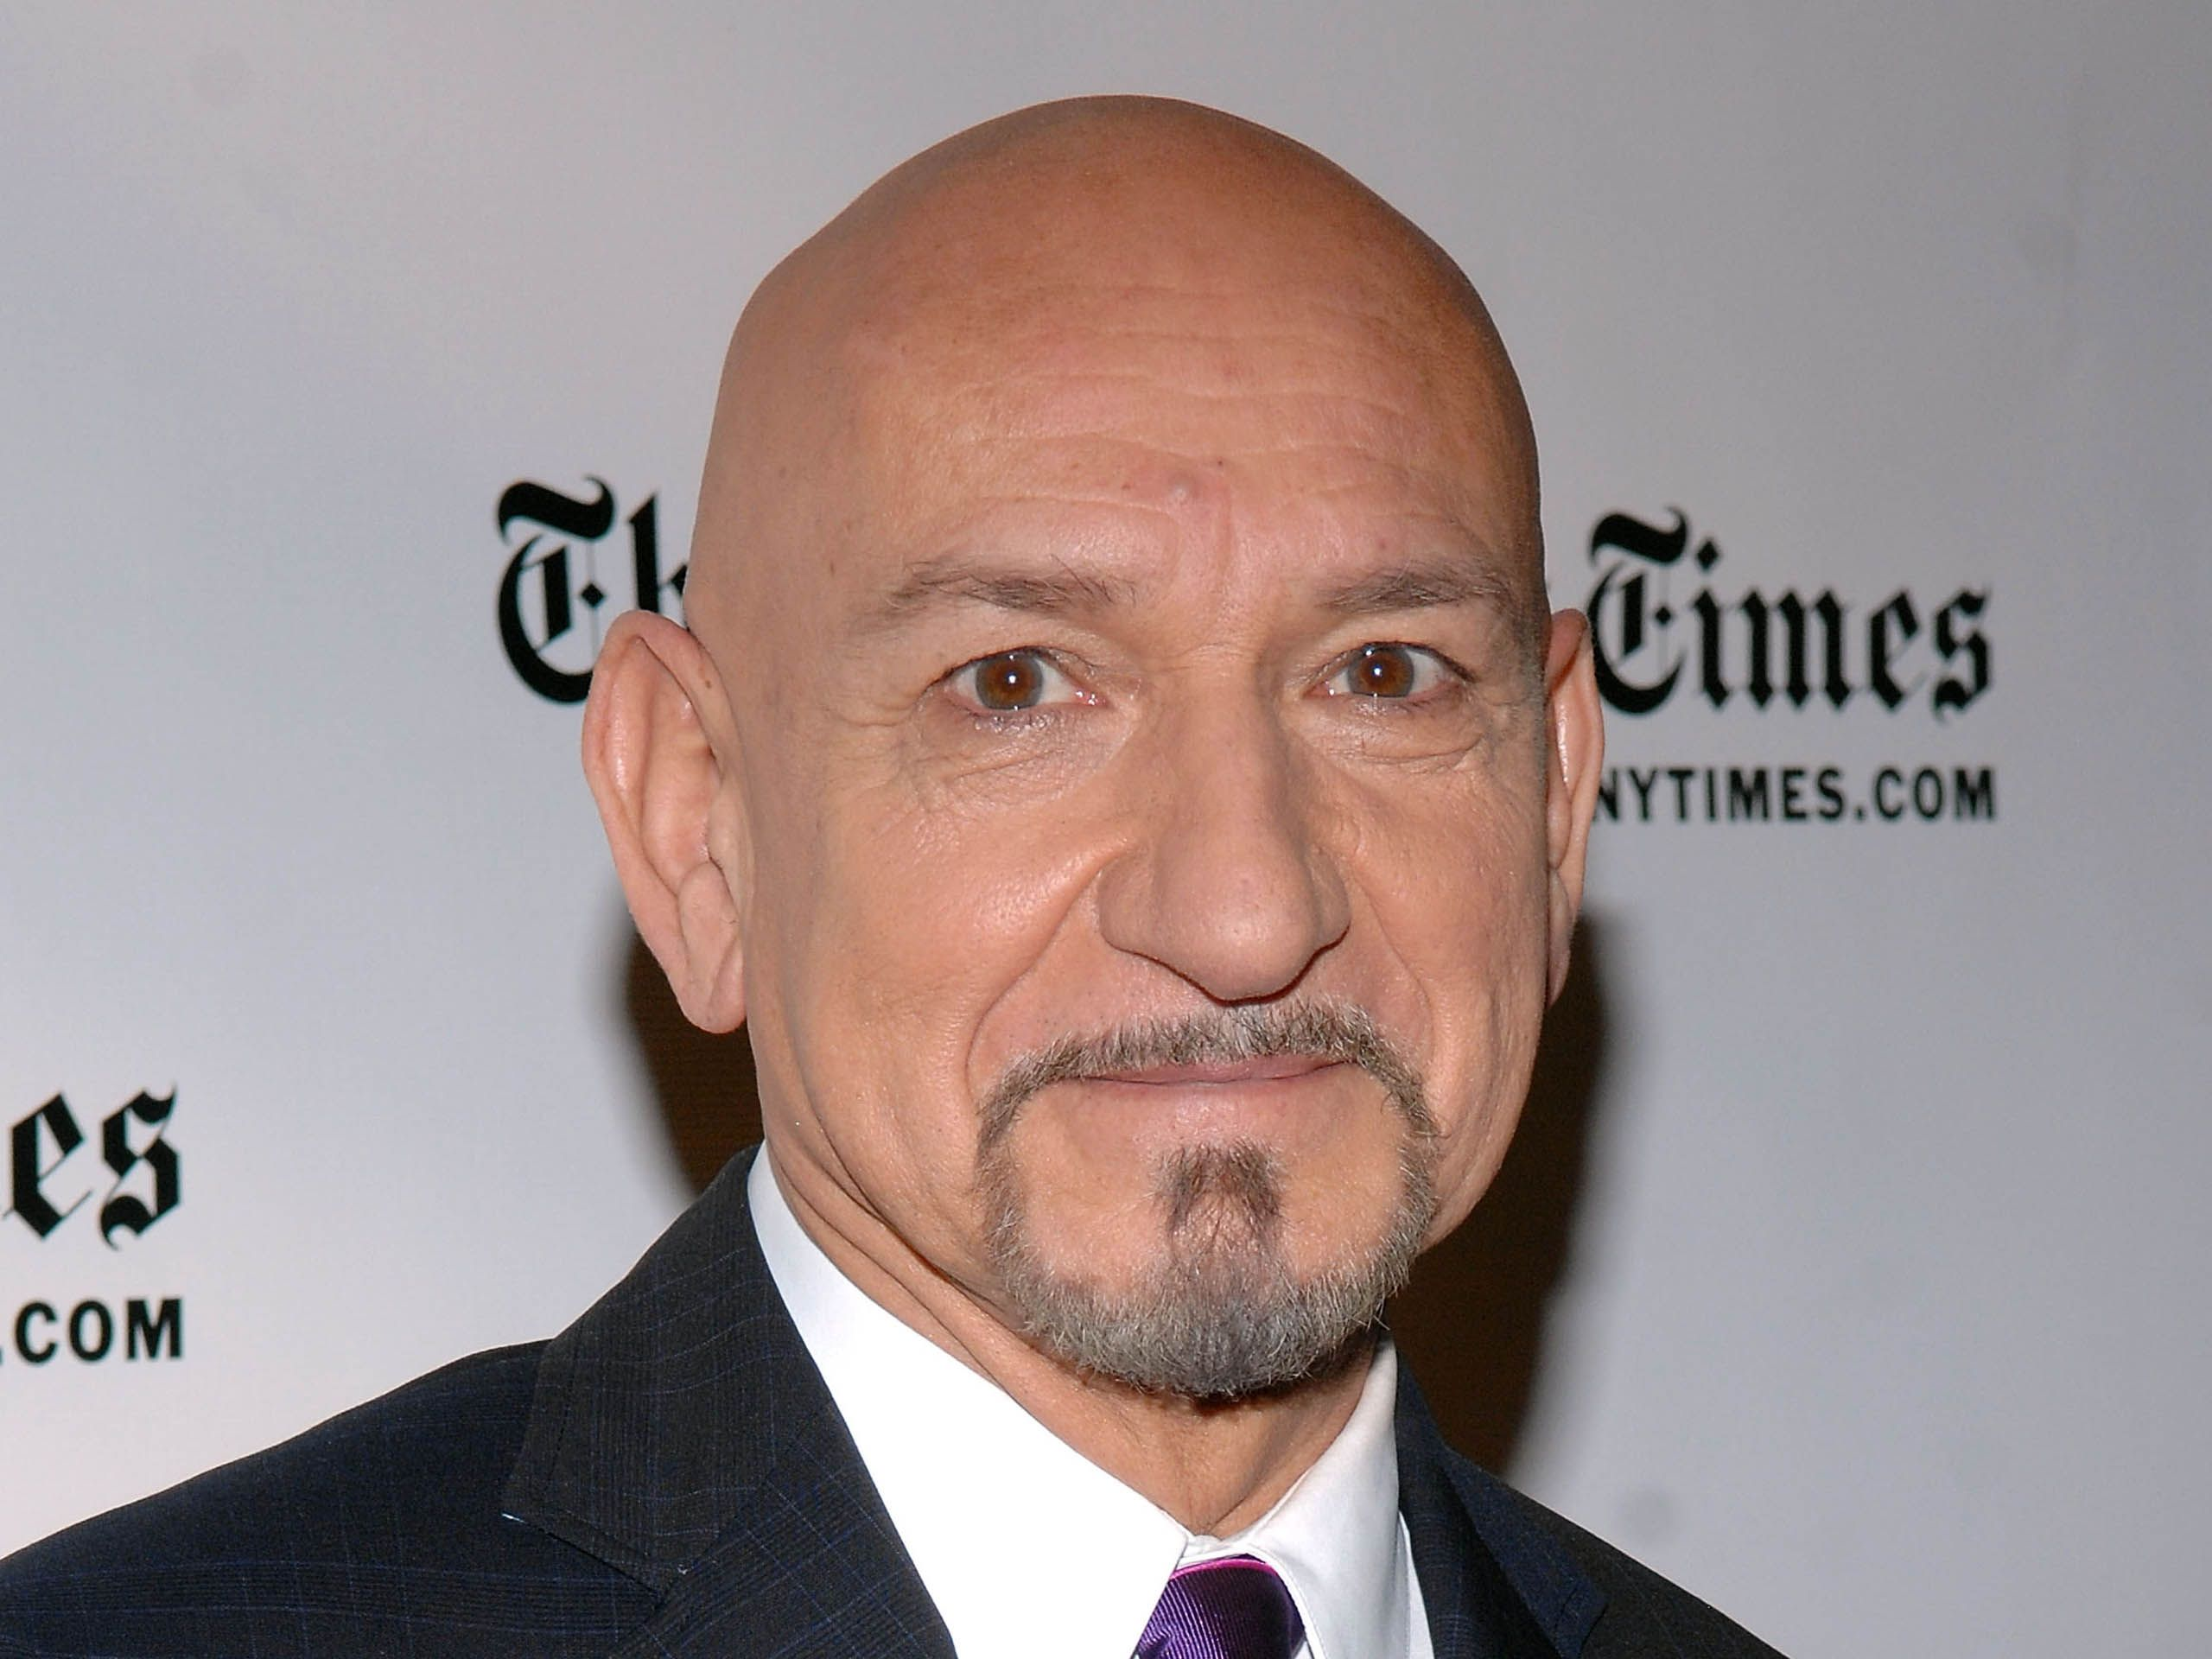 ben kingsley imdbben kingsley young, ben kingsley film, ben kingsley movies, ben kingsley filmography, ben kingsley wiki, ben kingsley фильмография, ben kingsley imdb, ben kingsley gandhi, ben kingsley best movies, ben kingsley фильмы, ben kingsley kinopoisk, ben kingsley wife, ben kingsley bagheera, ben kingsley and ryan reynolds movie, ben kingsley iranian general, ben kingsley movies list, ben kingsley and patrick stewart, ben kingsley harrison ford movie, ben kingsley sons, ben kingsley michael caine movie